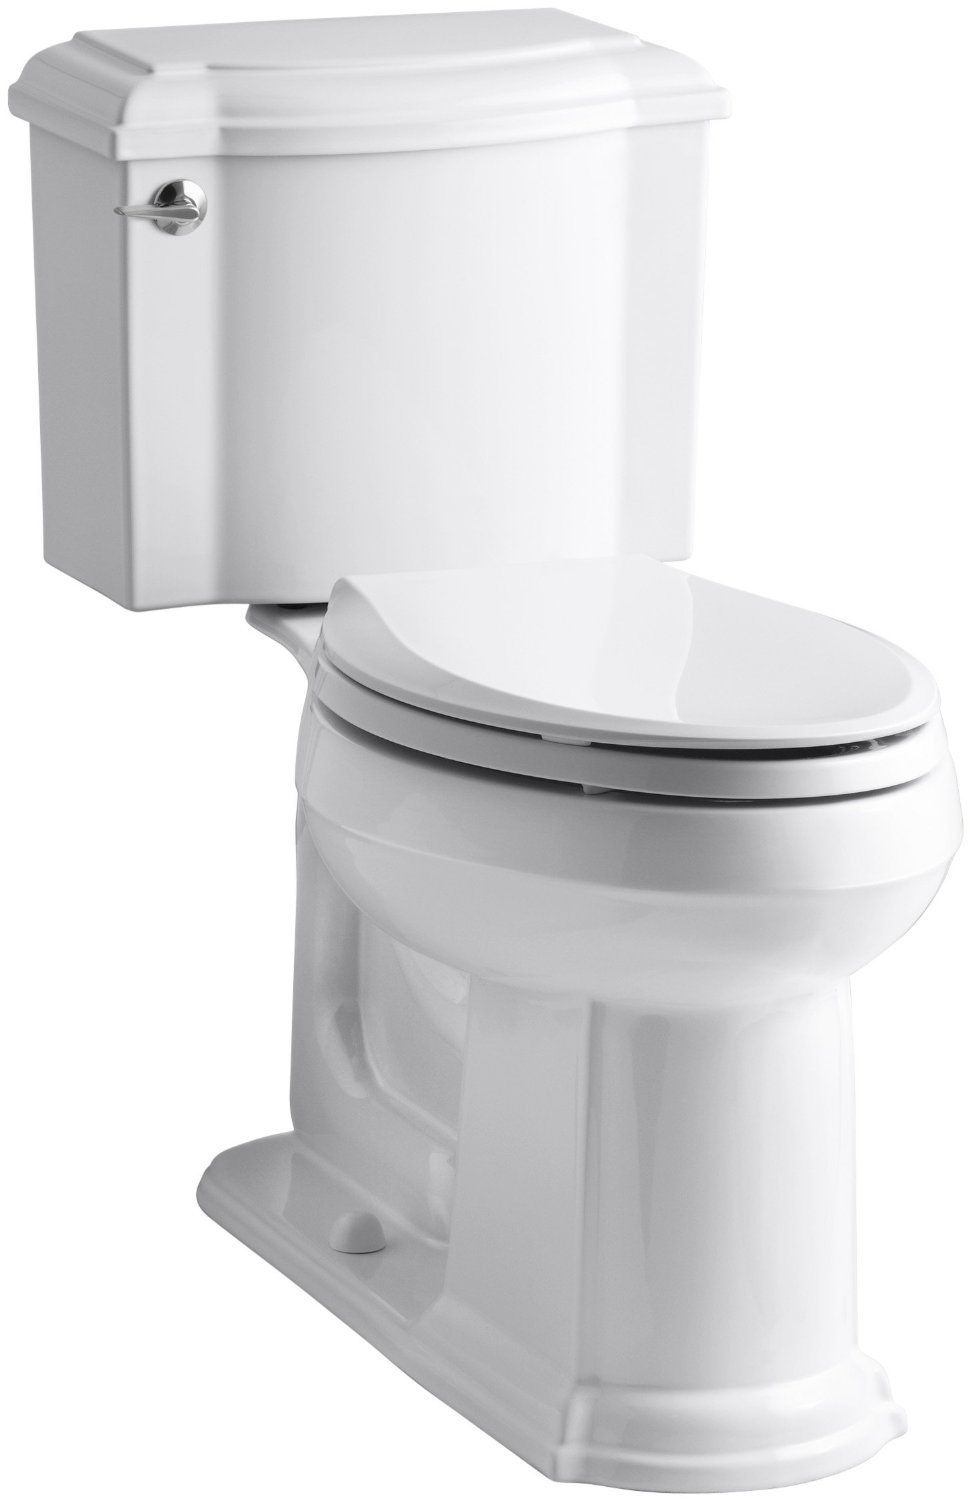 Kohler Devonshire Toilet Review